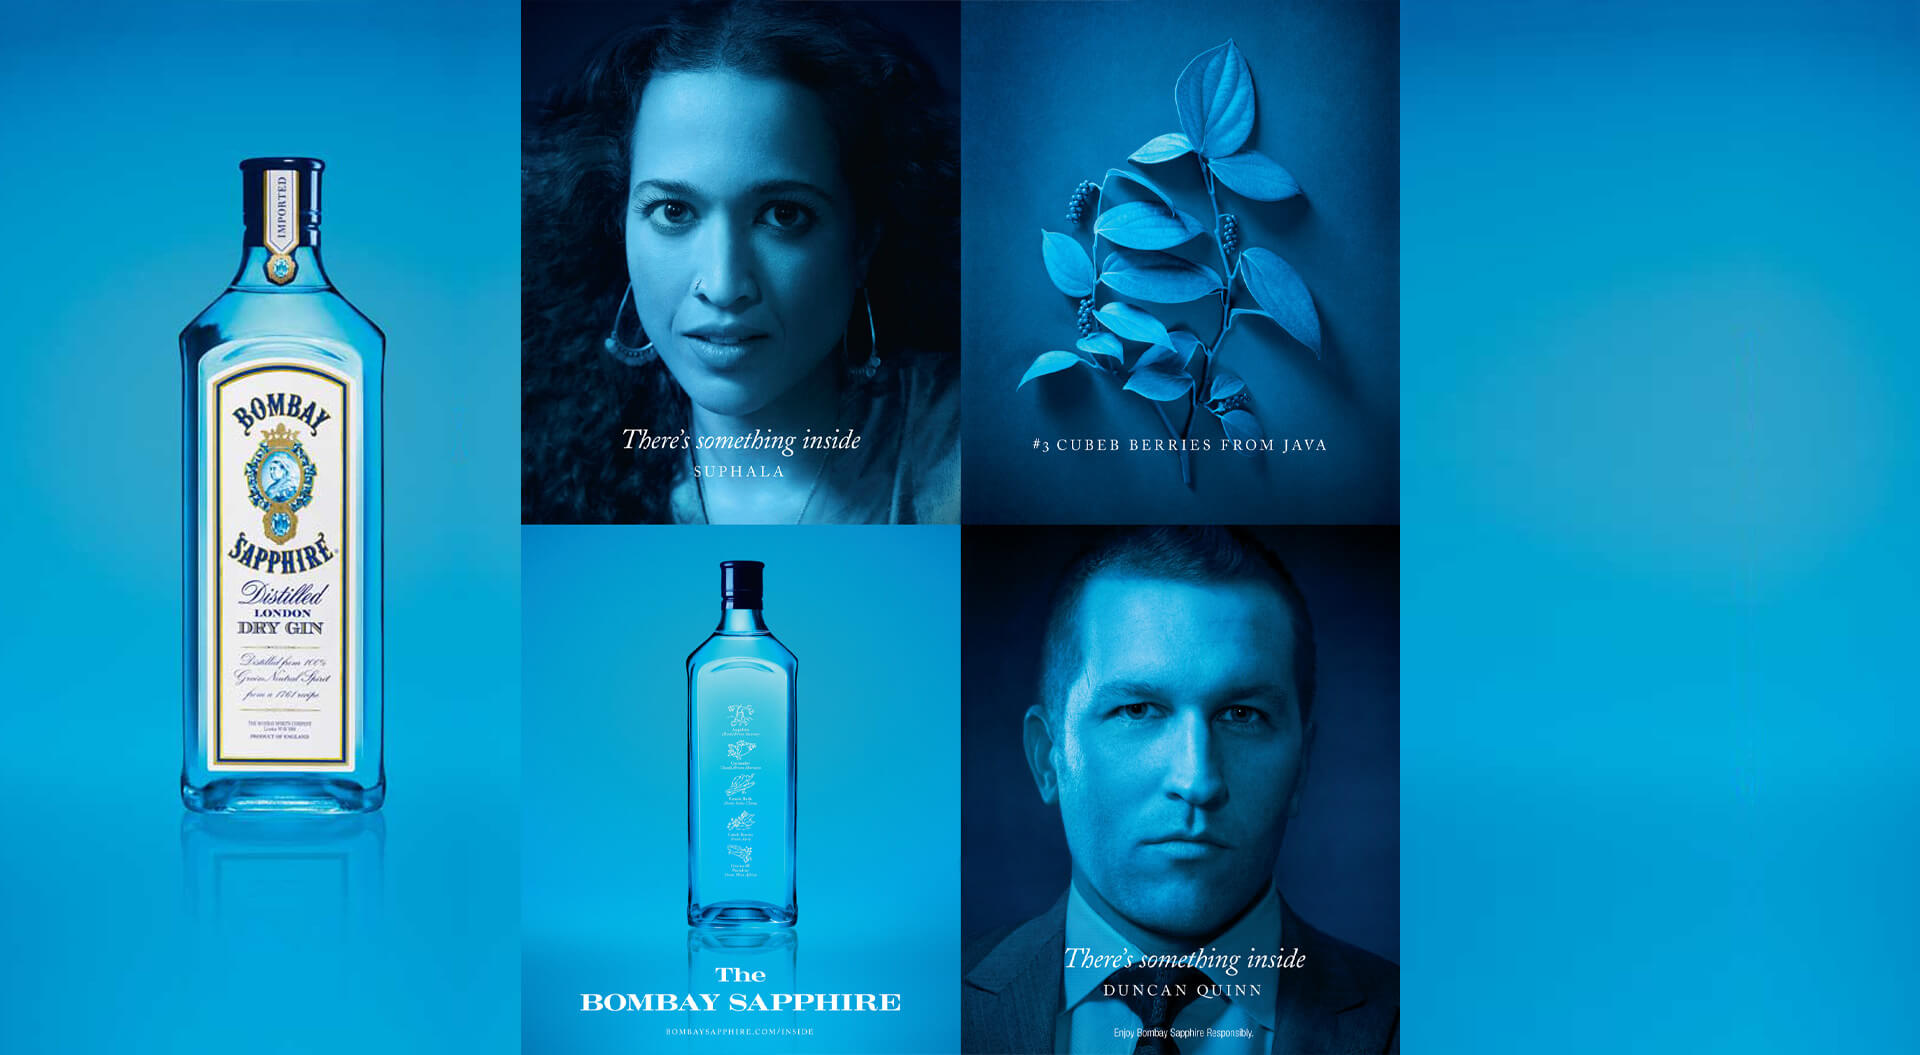 Spirits industry promotion campaigns travel retail, strategy marketing, retail design, airports, duty-free alcohol marketing, innovative concepts ideas Bacardi Global Travel Retail, brand  Bombay Sapphire Reign